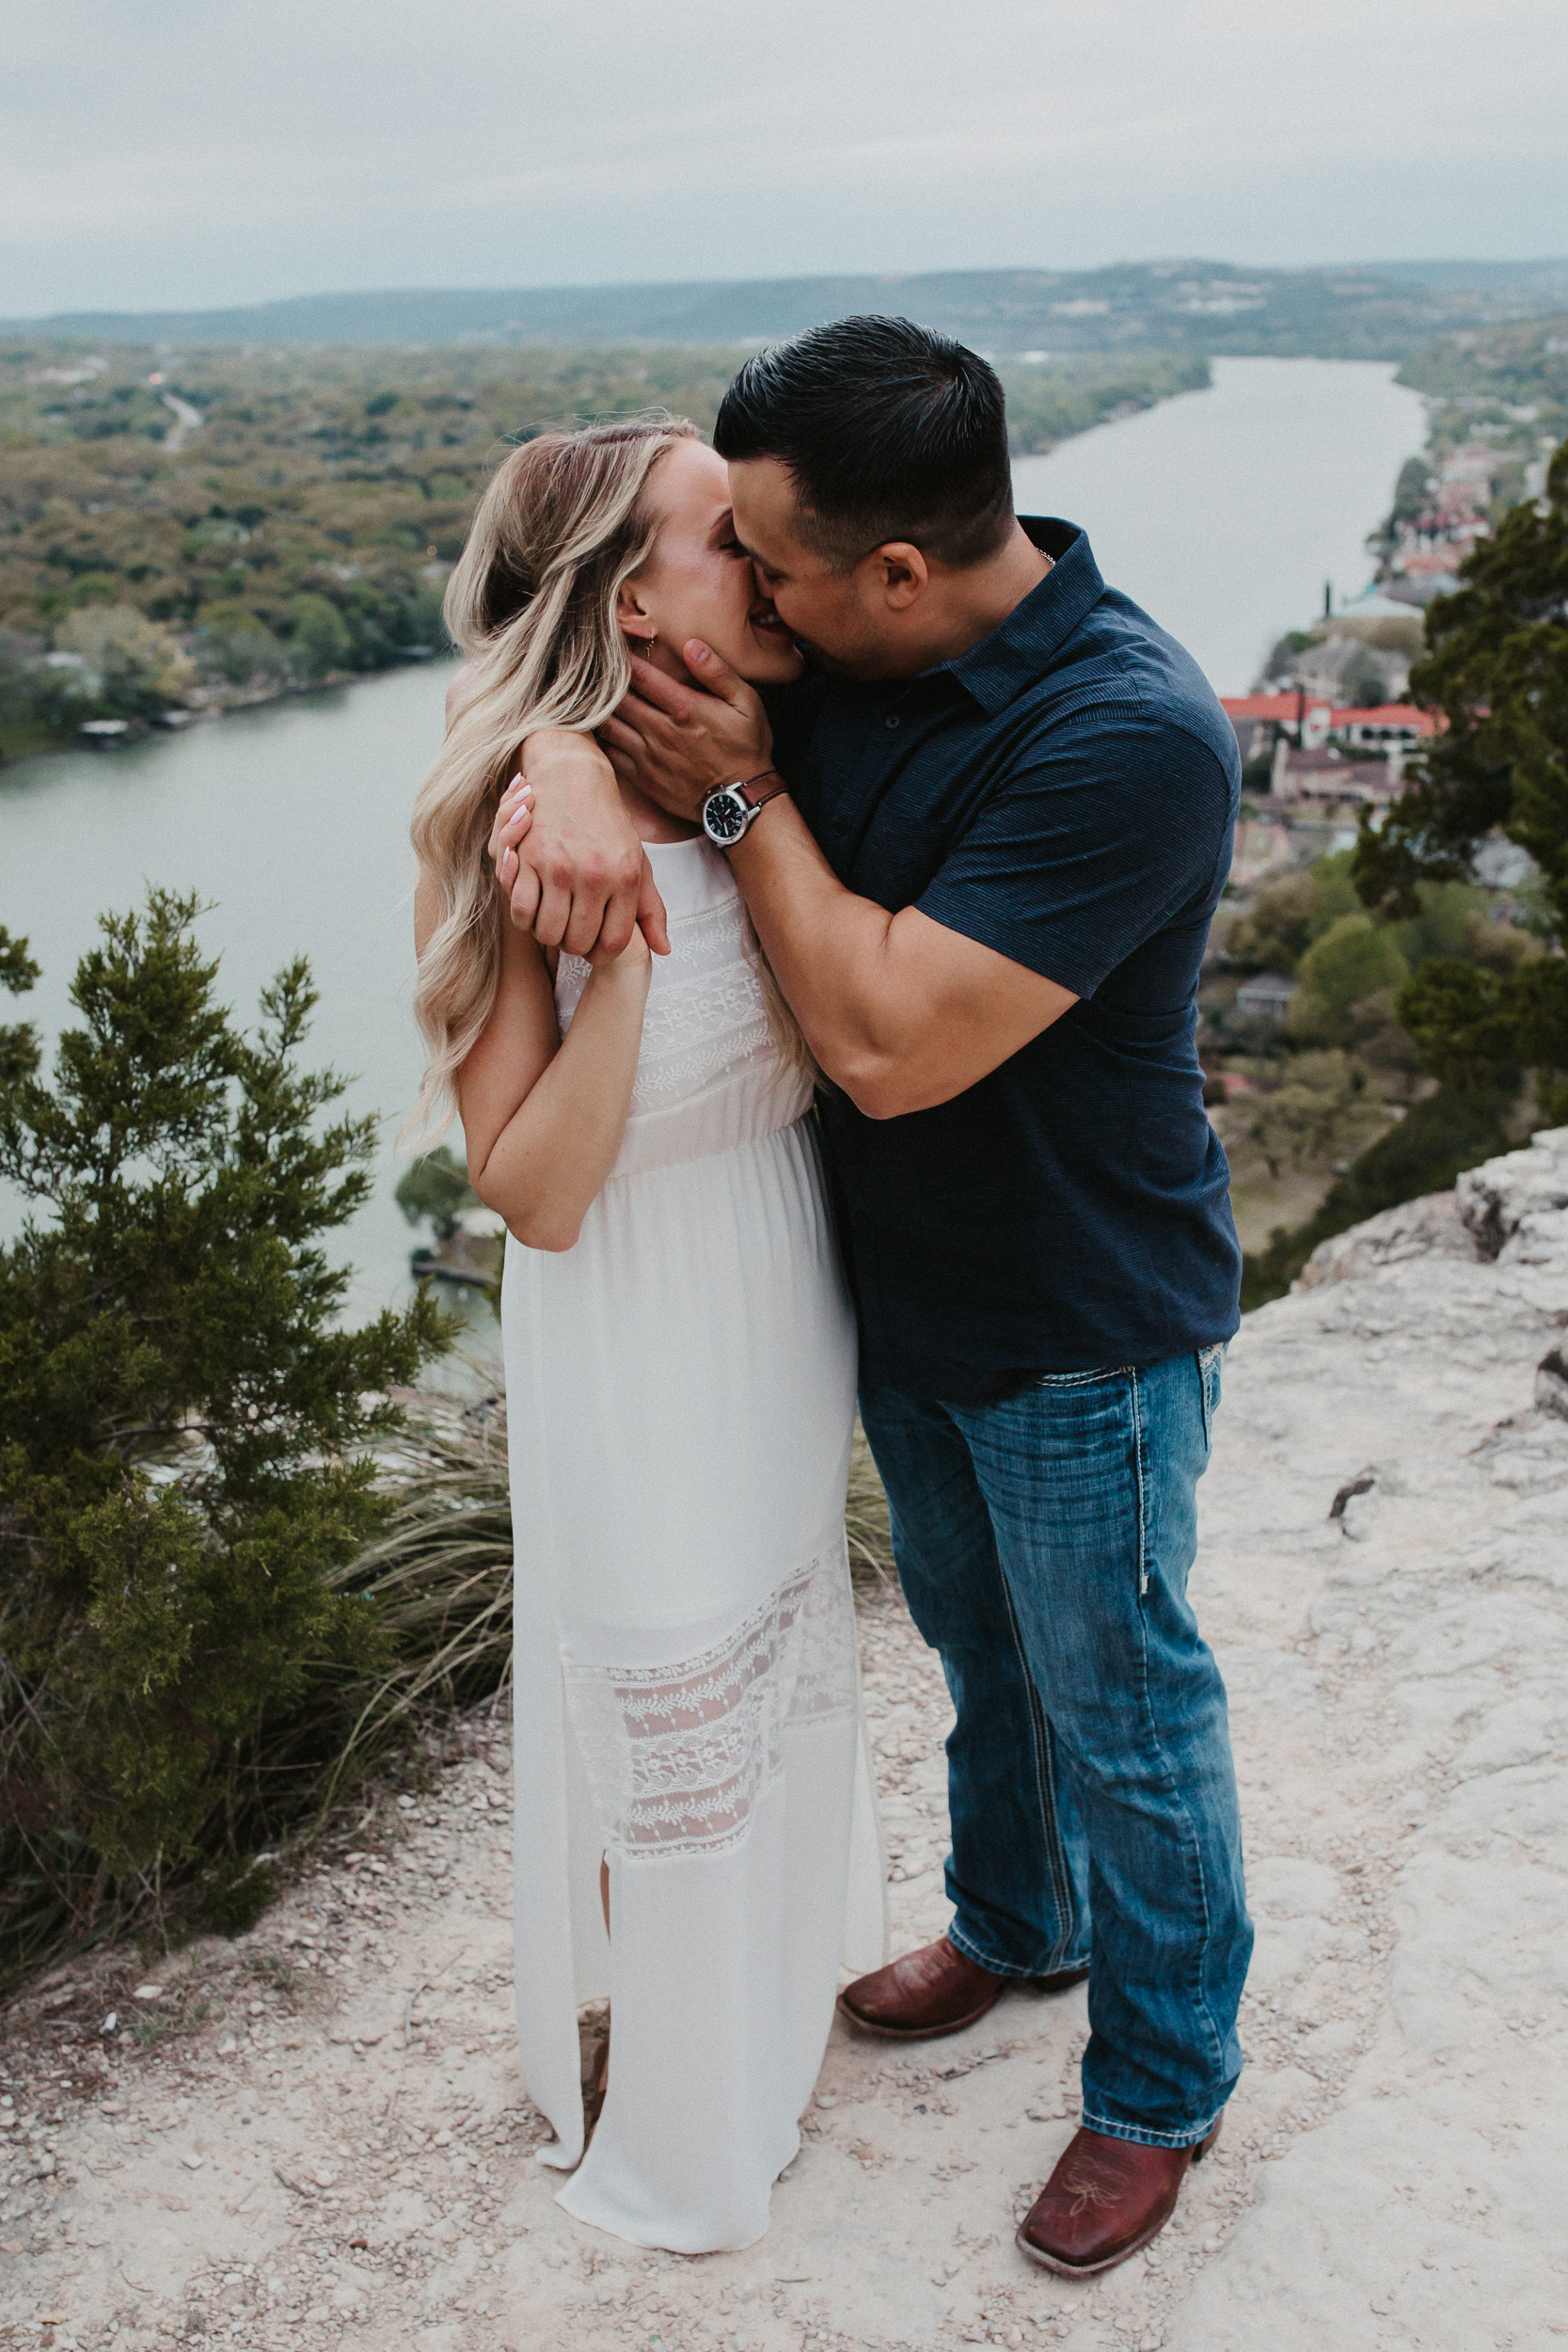 liz-stephen-engagement-mount-bonnell-austin-texas-022.jpg